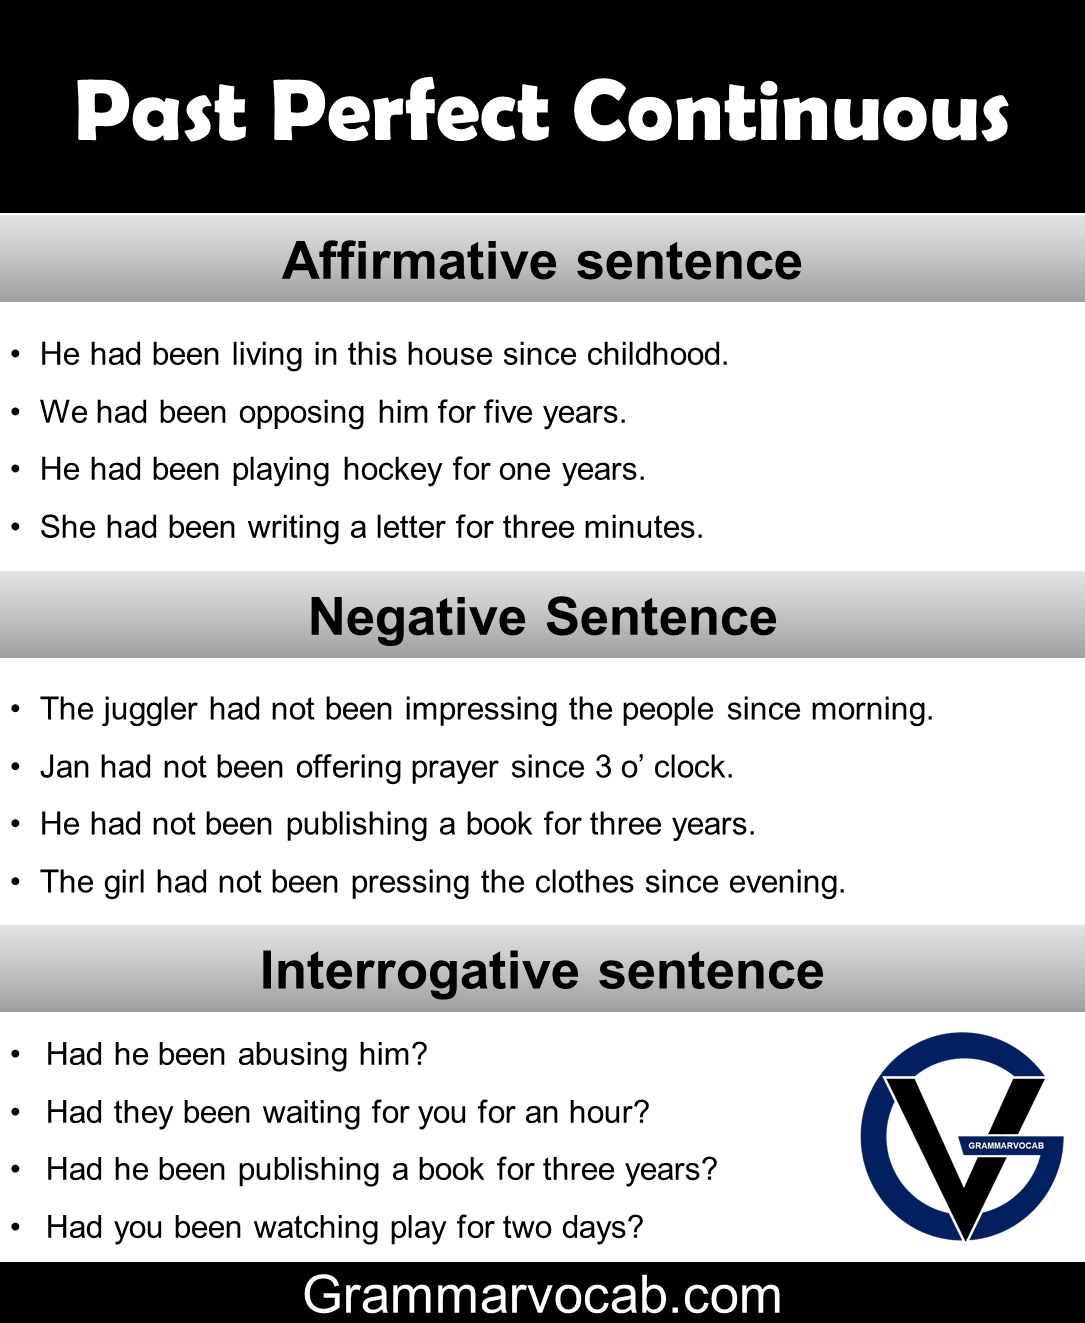 Past Perfect Continuous Tense examples